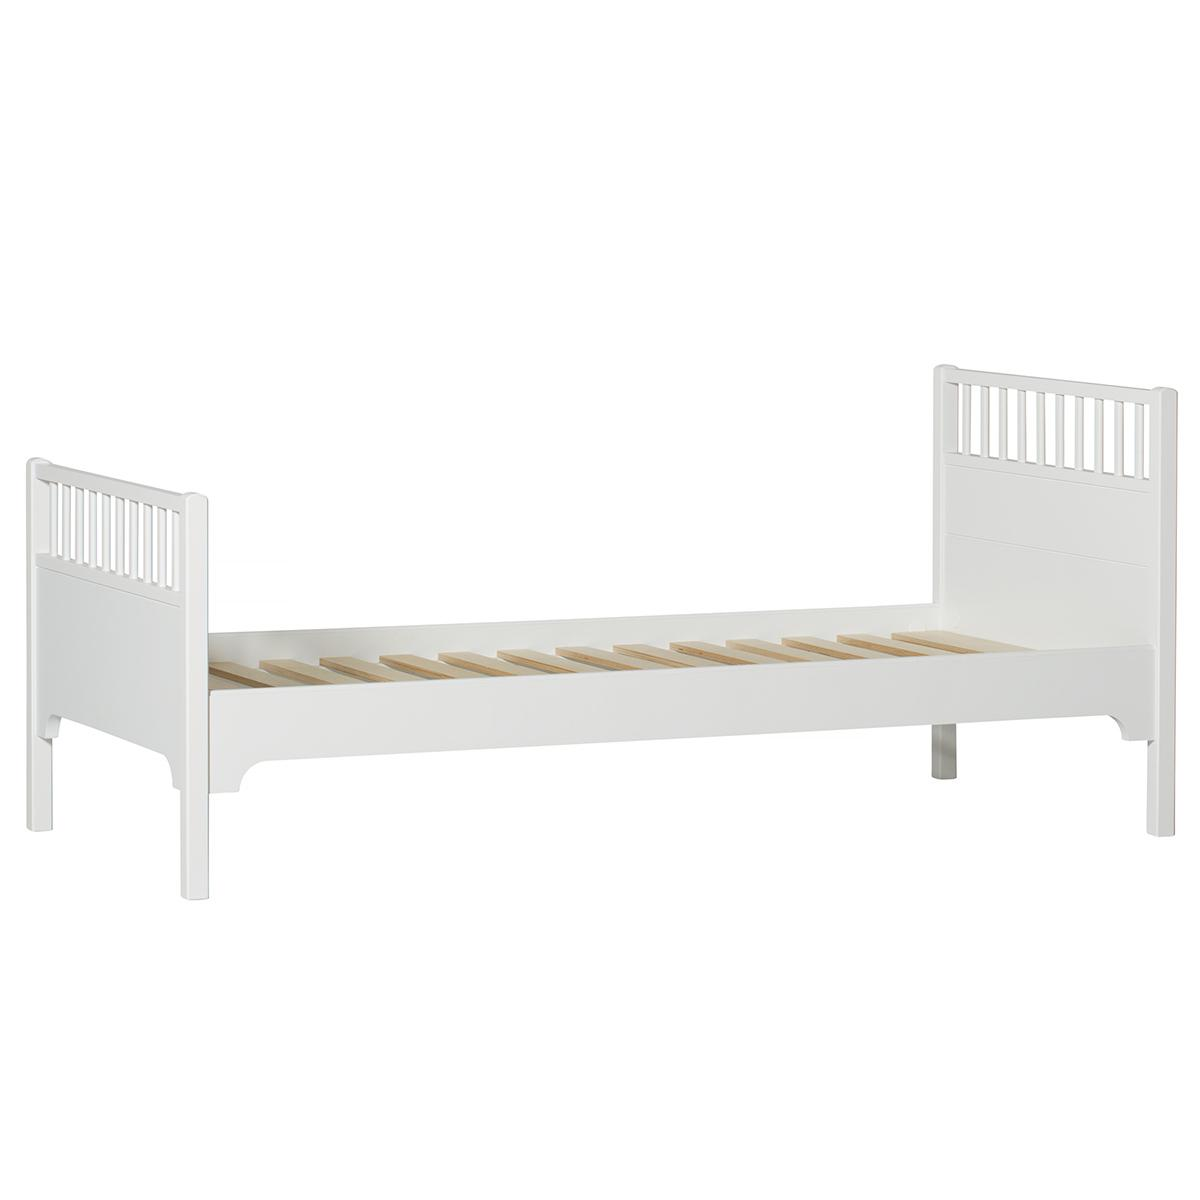 Lit 90x200 cm SEASIDE Oliver Furniture blanc